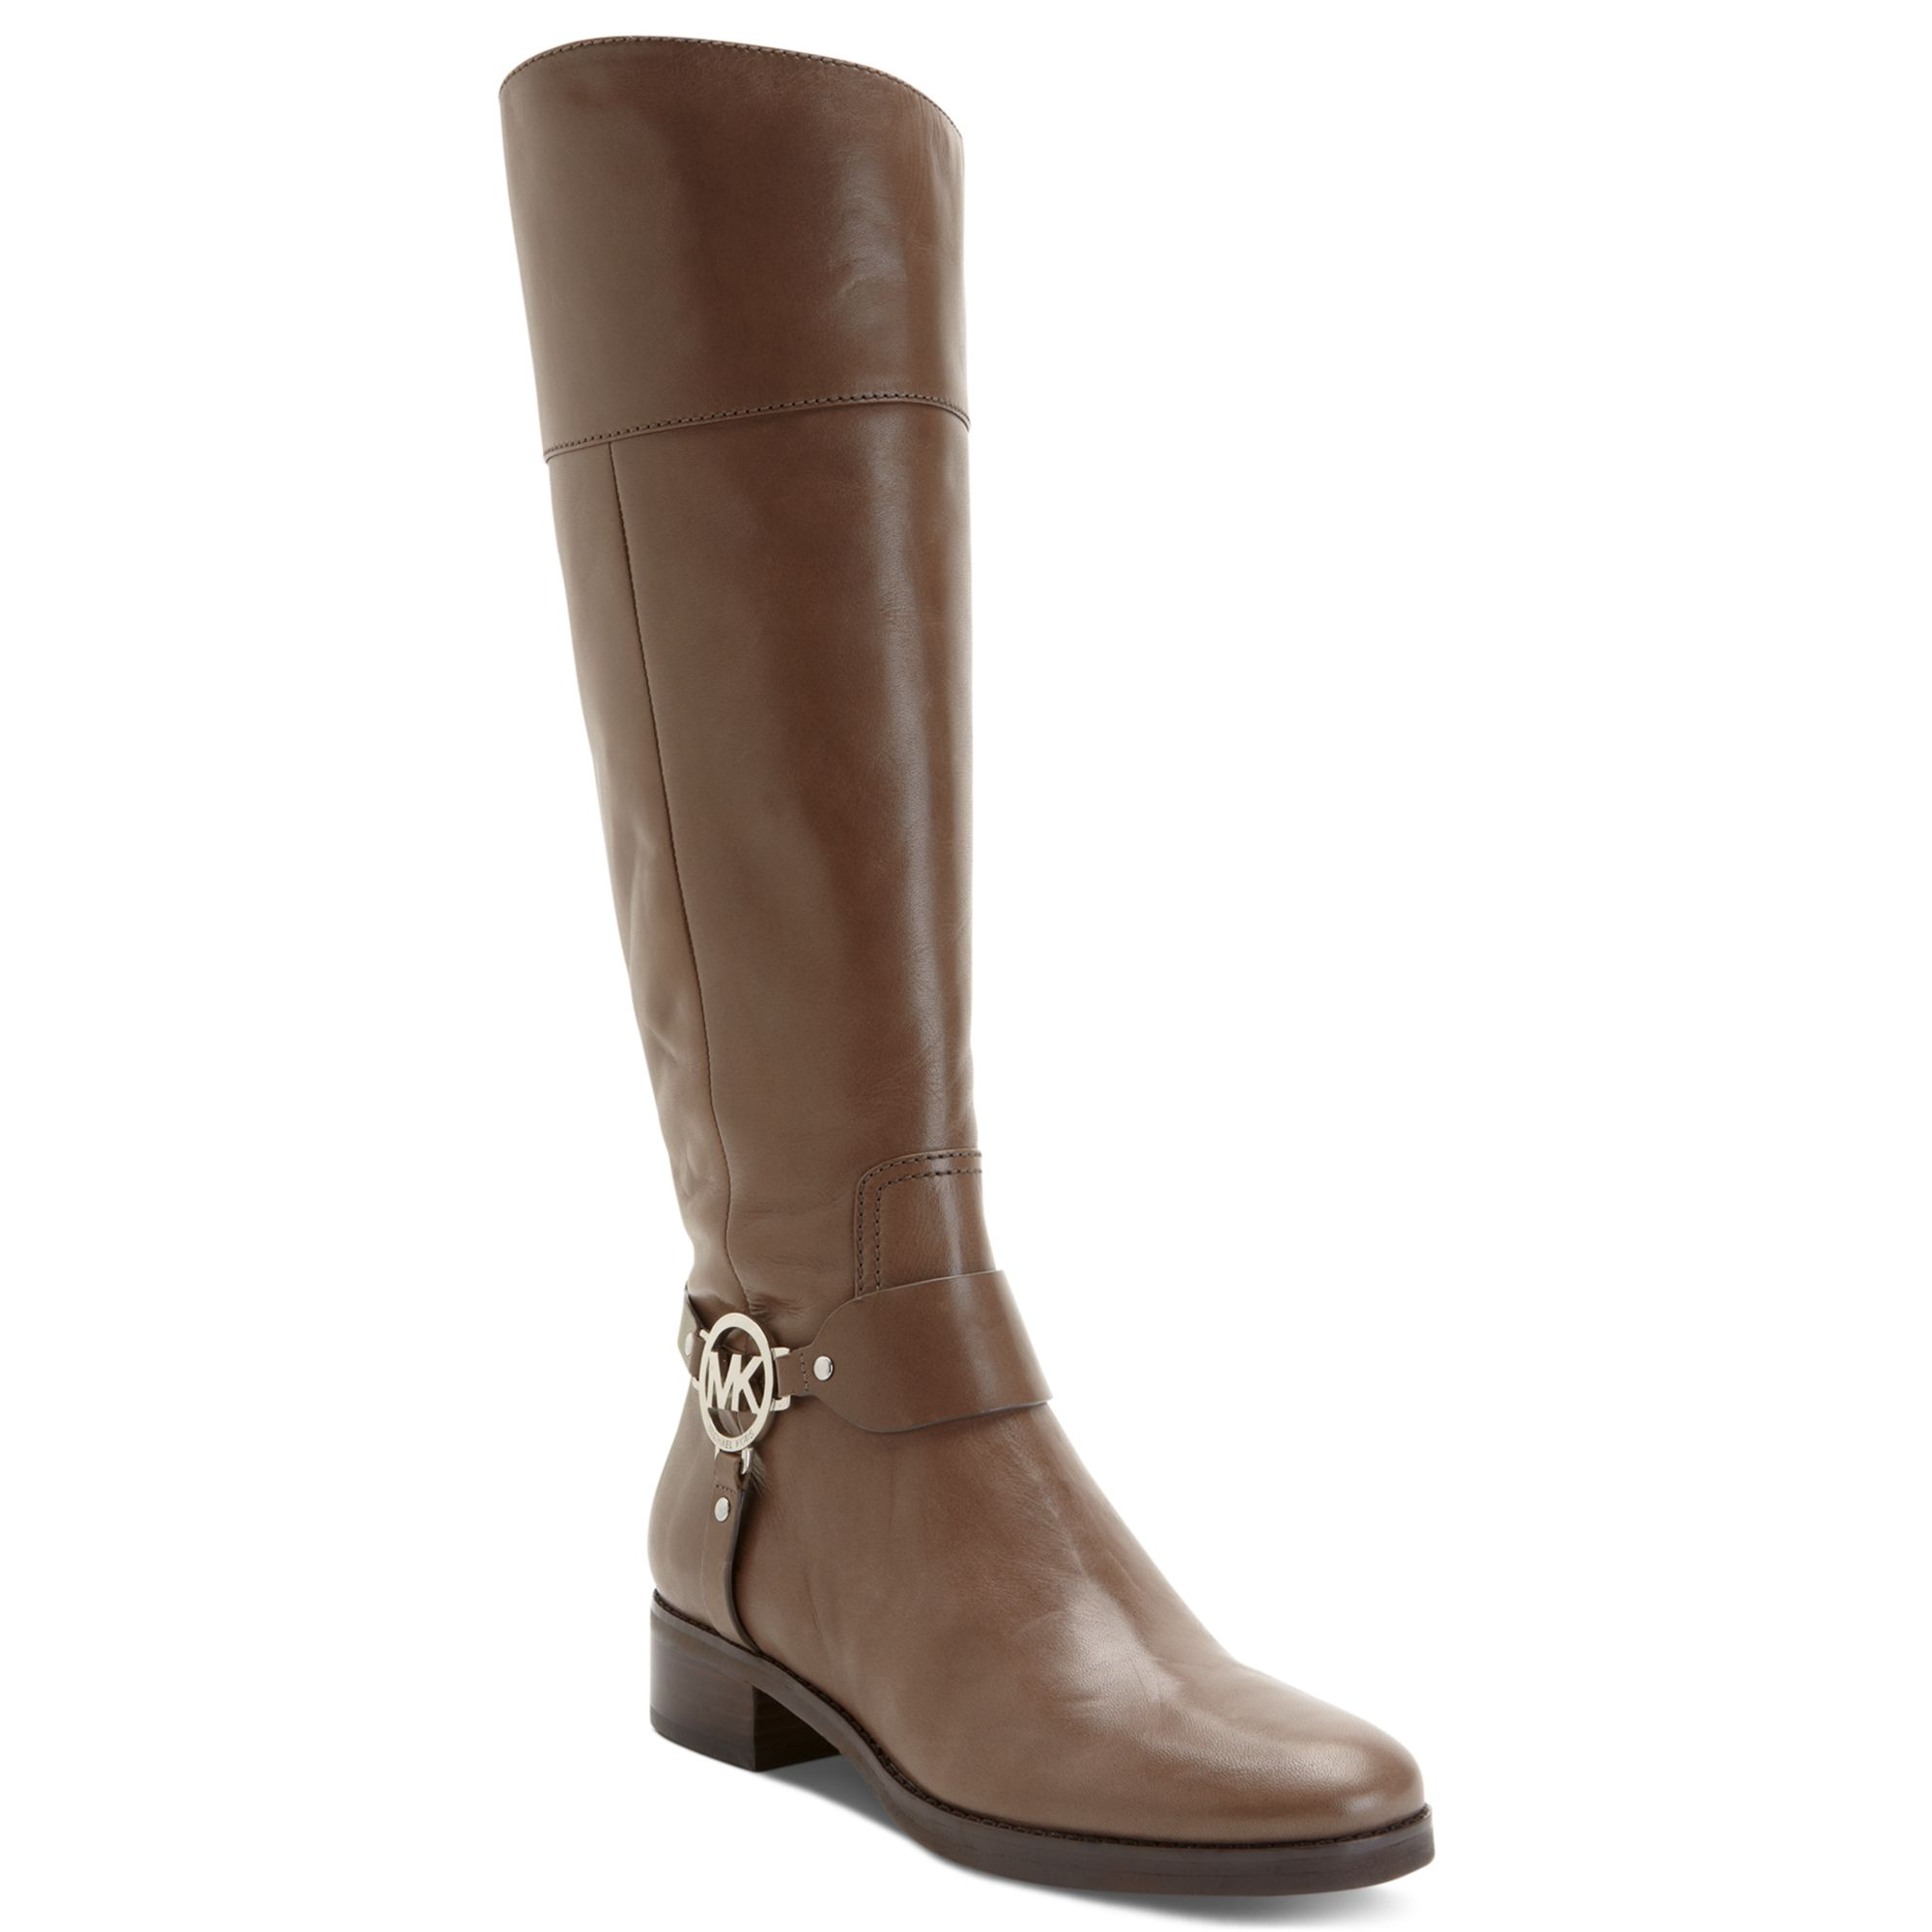 michael kors michael fulton harness boots in brown birch leather lyst. Black Bedroom Furniture Sets. Home Design Ideas